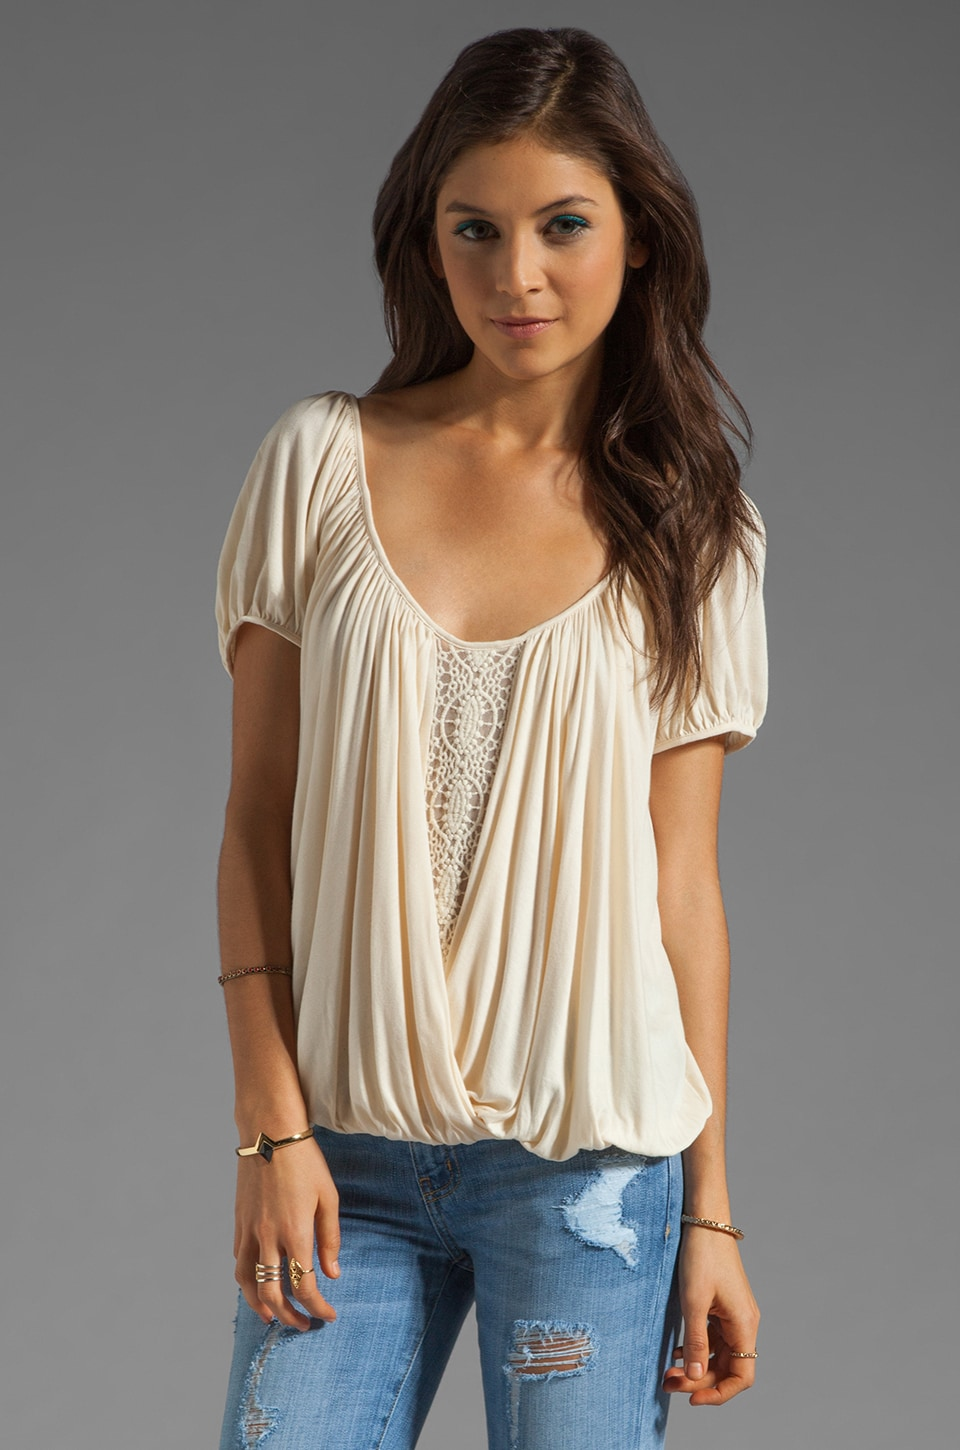 Free People Ann's Ruched Top in Tea